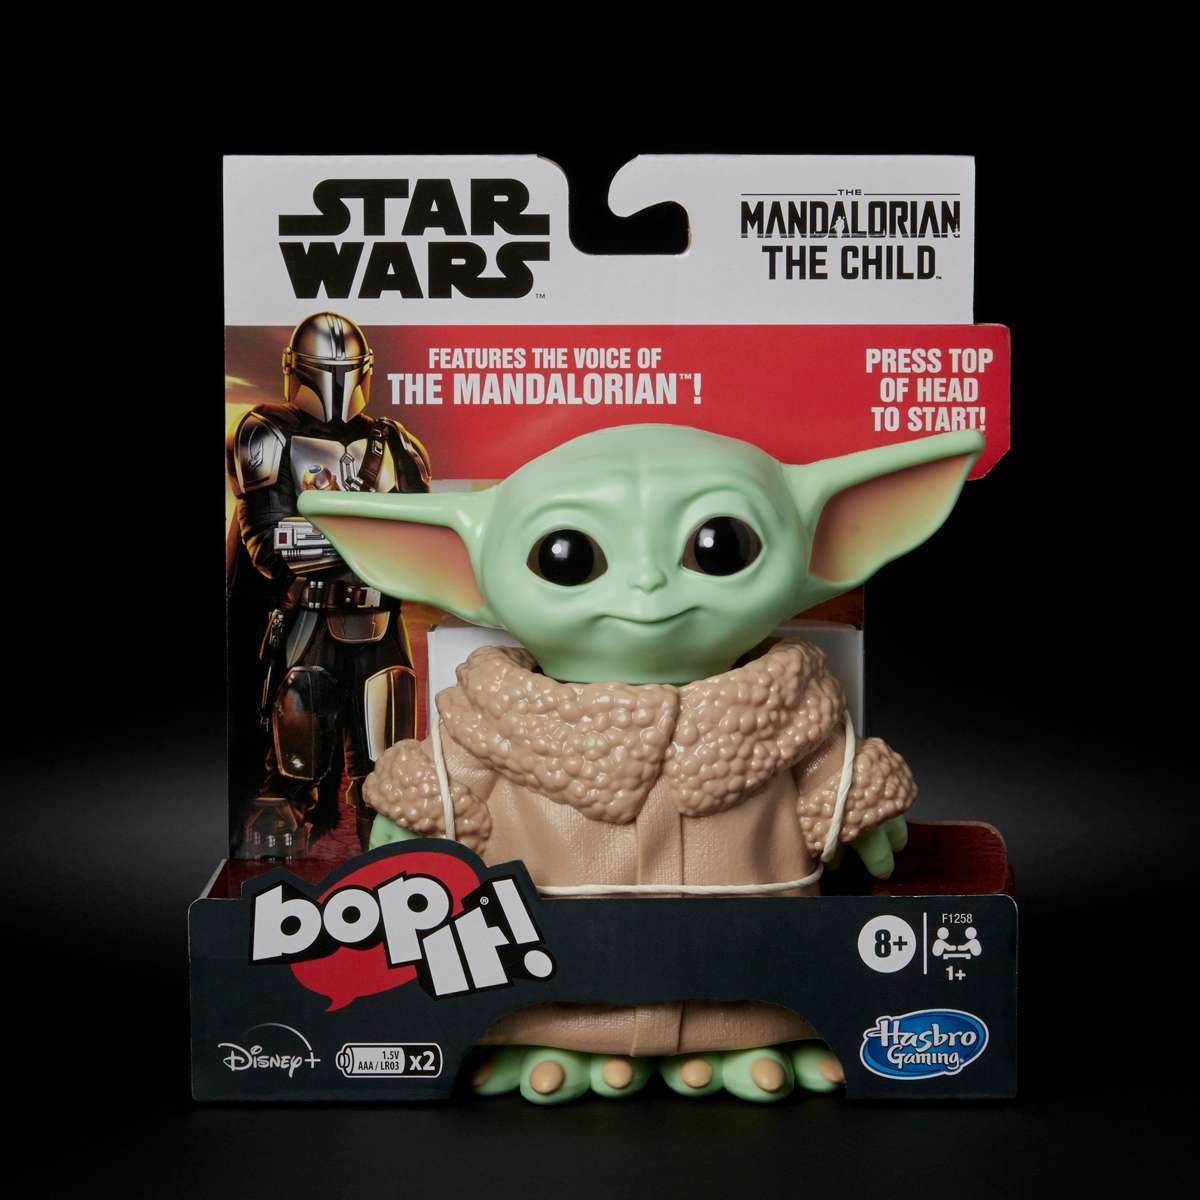 BOP IT! STAR WARS THE MANDALORIAN THE CHILD EDITION - black bckgrnd in pck